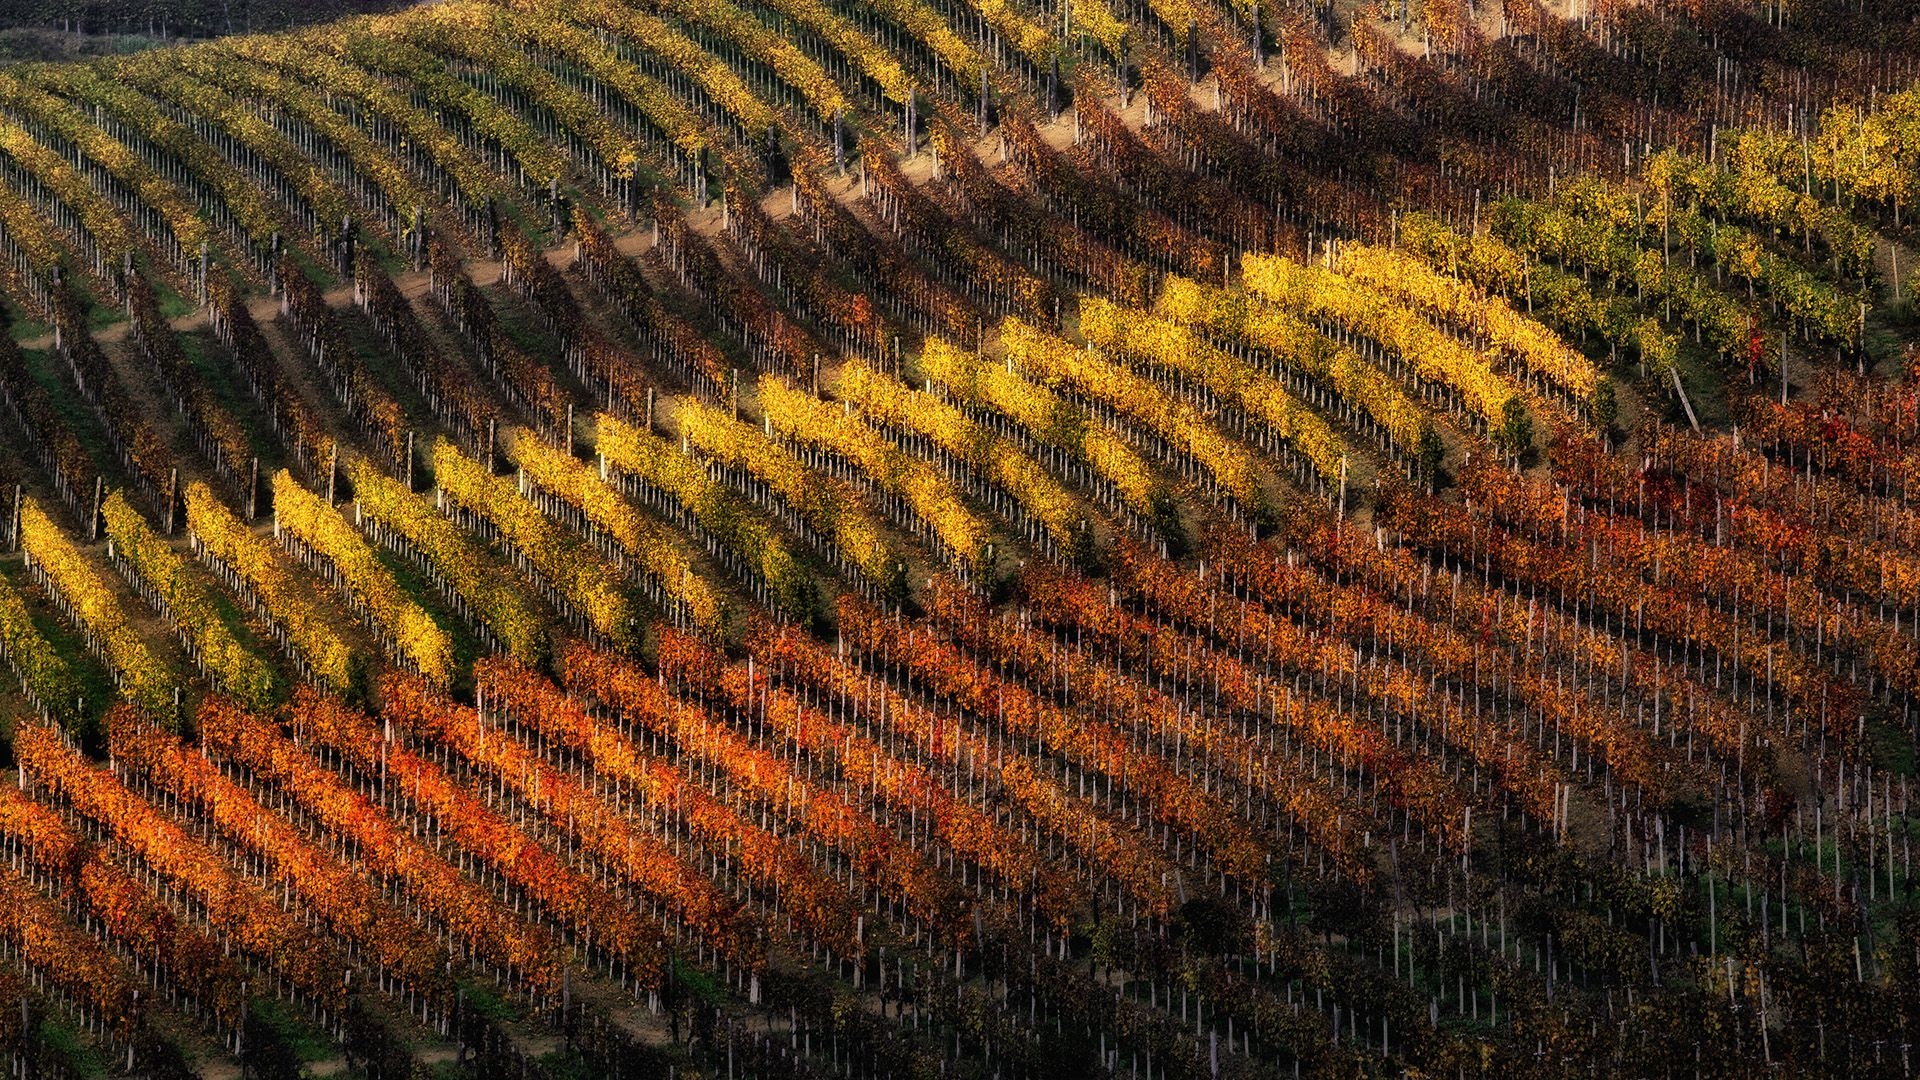 Wineyard stripes